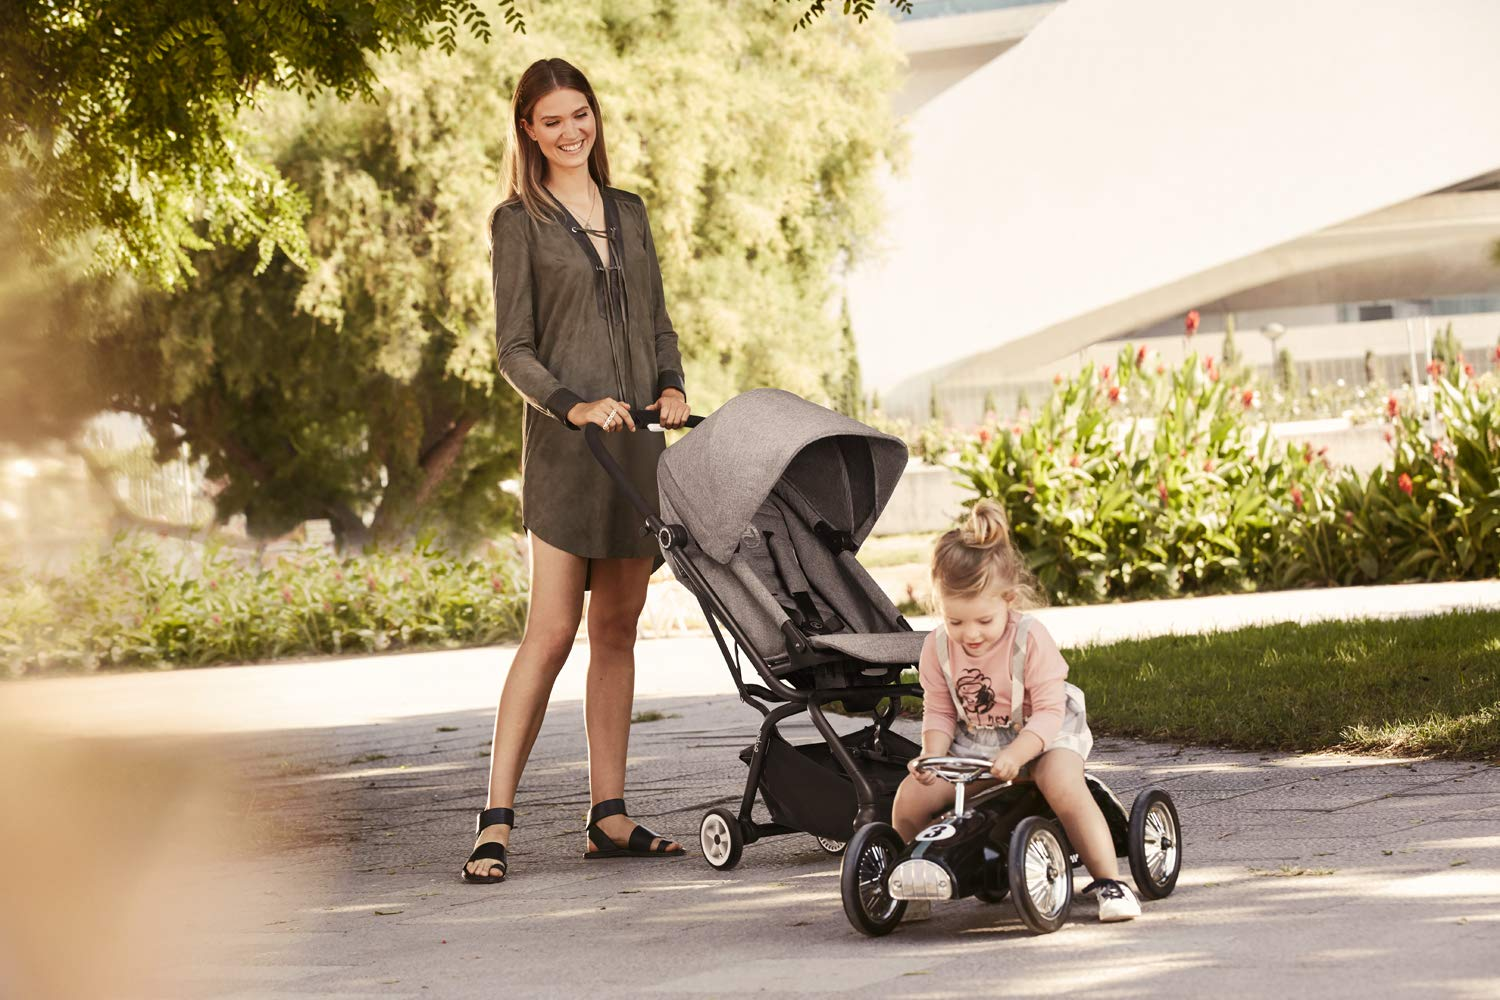 CYBEX Gold Eezy S Twist Compact Pushchair, 360° Rotatable Seat Unit, Ultra-Compact, From Birth to 17 kg (approx. 4 years), Lavastone Black  Sturdy, High-quality Compact Pushchair for newborns up to approx. 17 kg (approx. 4 years) with unique rotatable seat unit - Including rain cover for optimum use in all weather conditions Quick and easy change of direction with 360° rotatable seat unit, Comfortable sitting position thanks to stepless adjustable reclining backrest with lie-flat position, Puncture proof tyres and all-terrain wheel suspension Simple folding with one-hand folding mechanism for compact travel size (LxWxH: 26 x 45 x 56 cm), Extremely manoeuvrable due to narrow wheelbase, Can also be used as 3-in-1 travel system with separately available CYBEX and gb infant carriers and the baby cocoon S (sold separately) 9